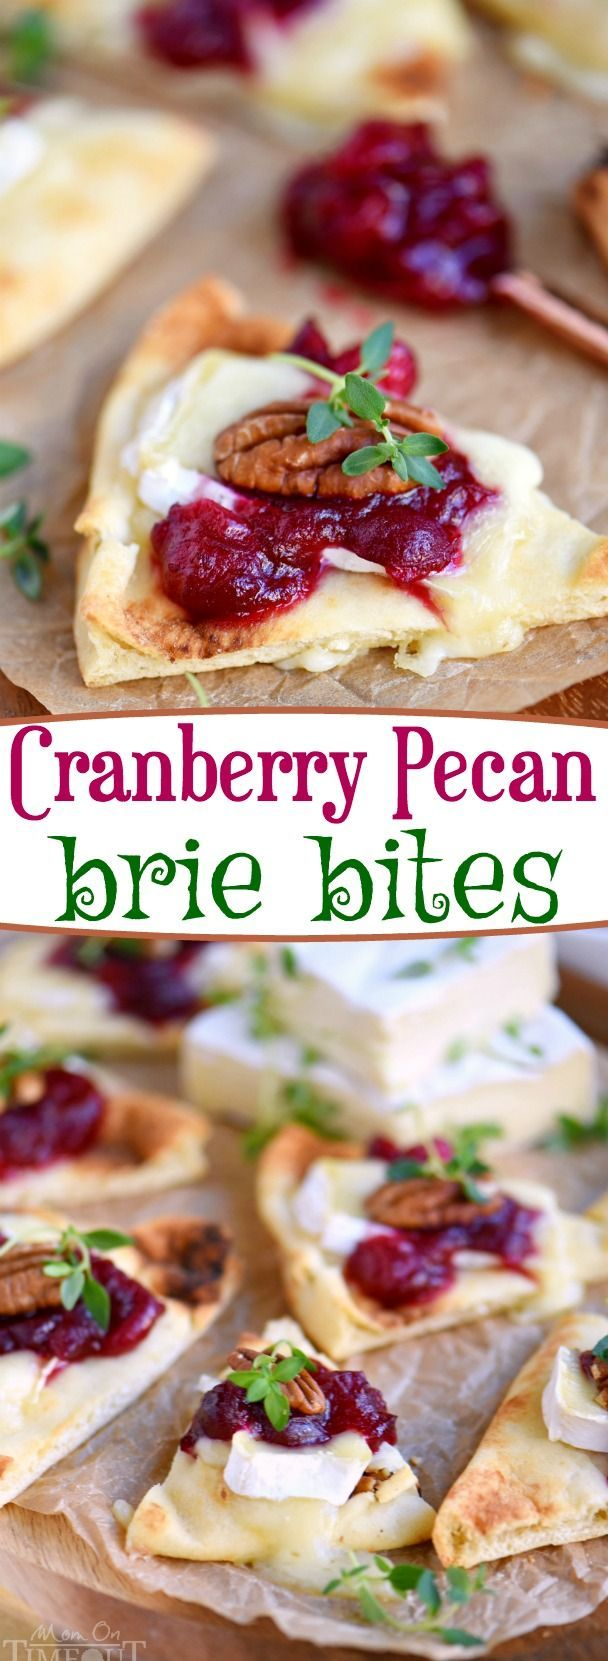 These Cranberry Pecan Brie Bites are perfect for holiday entertaining! Whether you make them for Thanksgiving, Christmas, or New Year's, no one will be able to resist the gooey melted brie, tart cranberry sauce, and toasted pecan atop a piece of naan! Easy and fabulous - just what holiday entertaining should be! // Mom On Timeout #brie #appetizer #recipe #cranberry #cranberries #holiday #entertaining